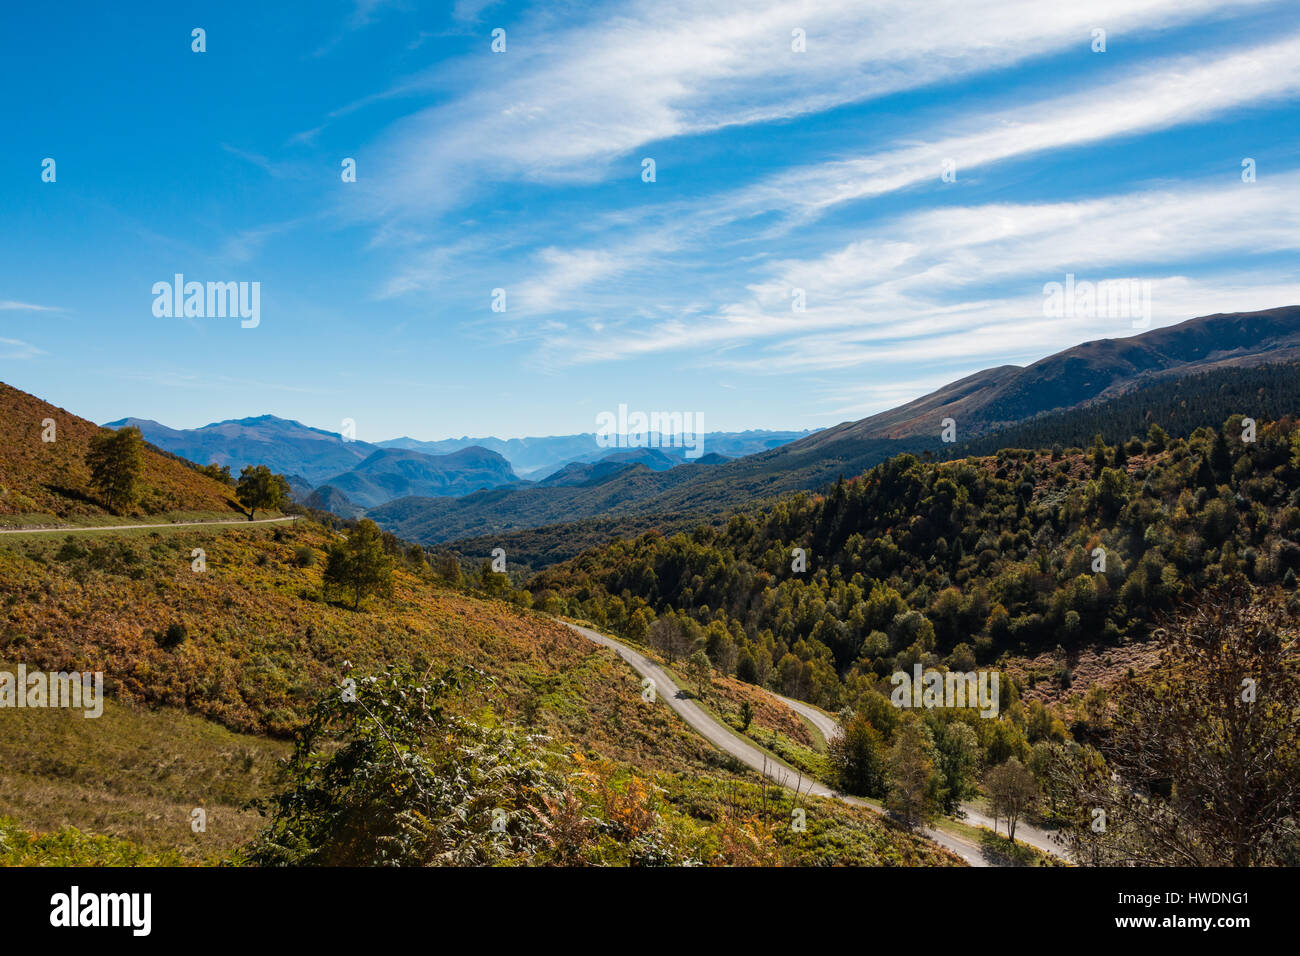 A winding scenic road in the Pyrenees in autumn Stock Photo